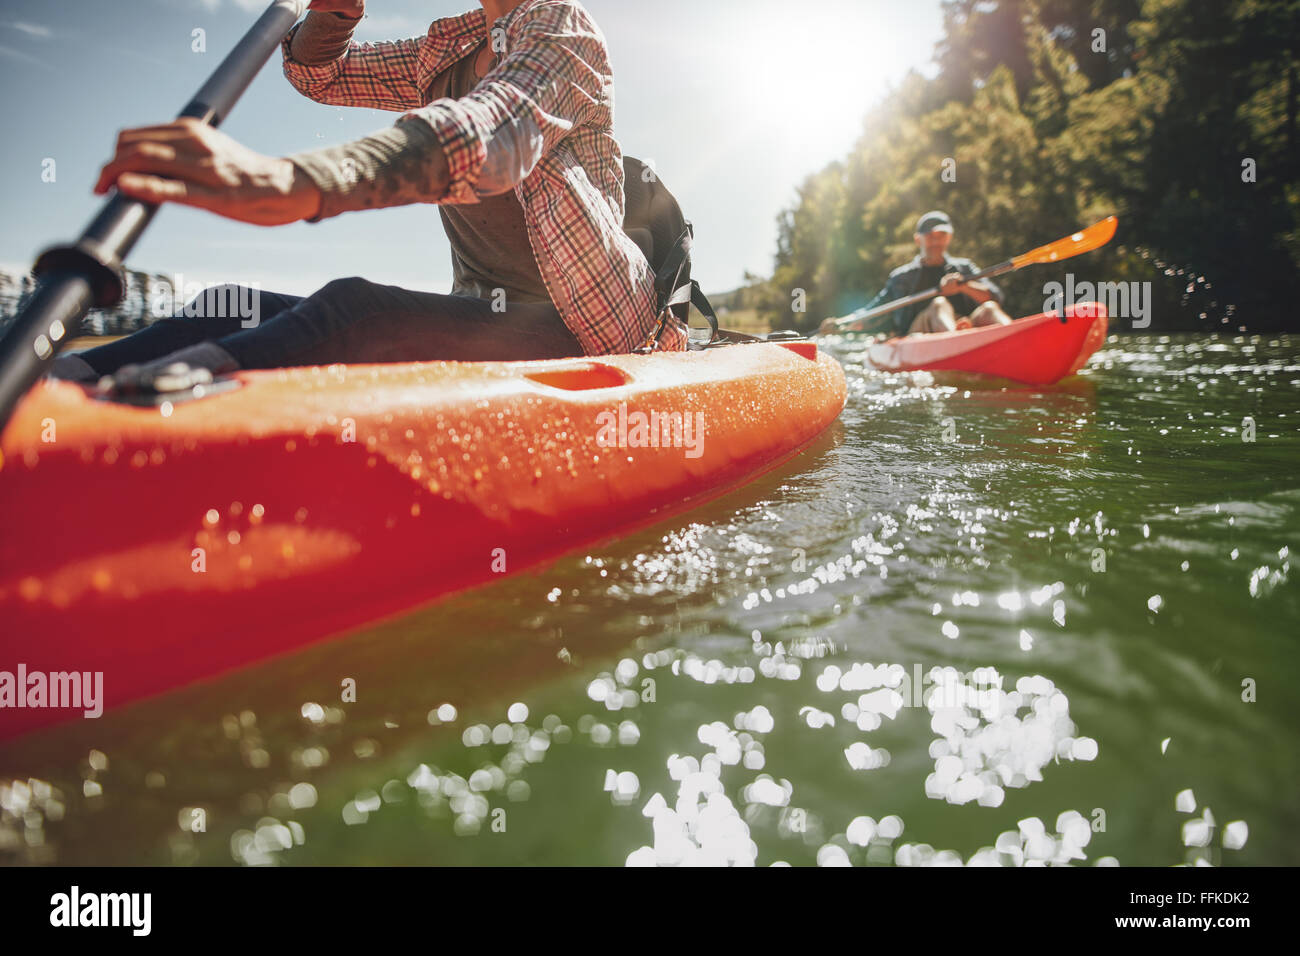 Cropped image of woman kayaking with a man in background. Couple canoeing in a lake on a summer day. - Stock Image